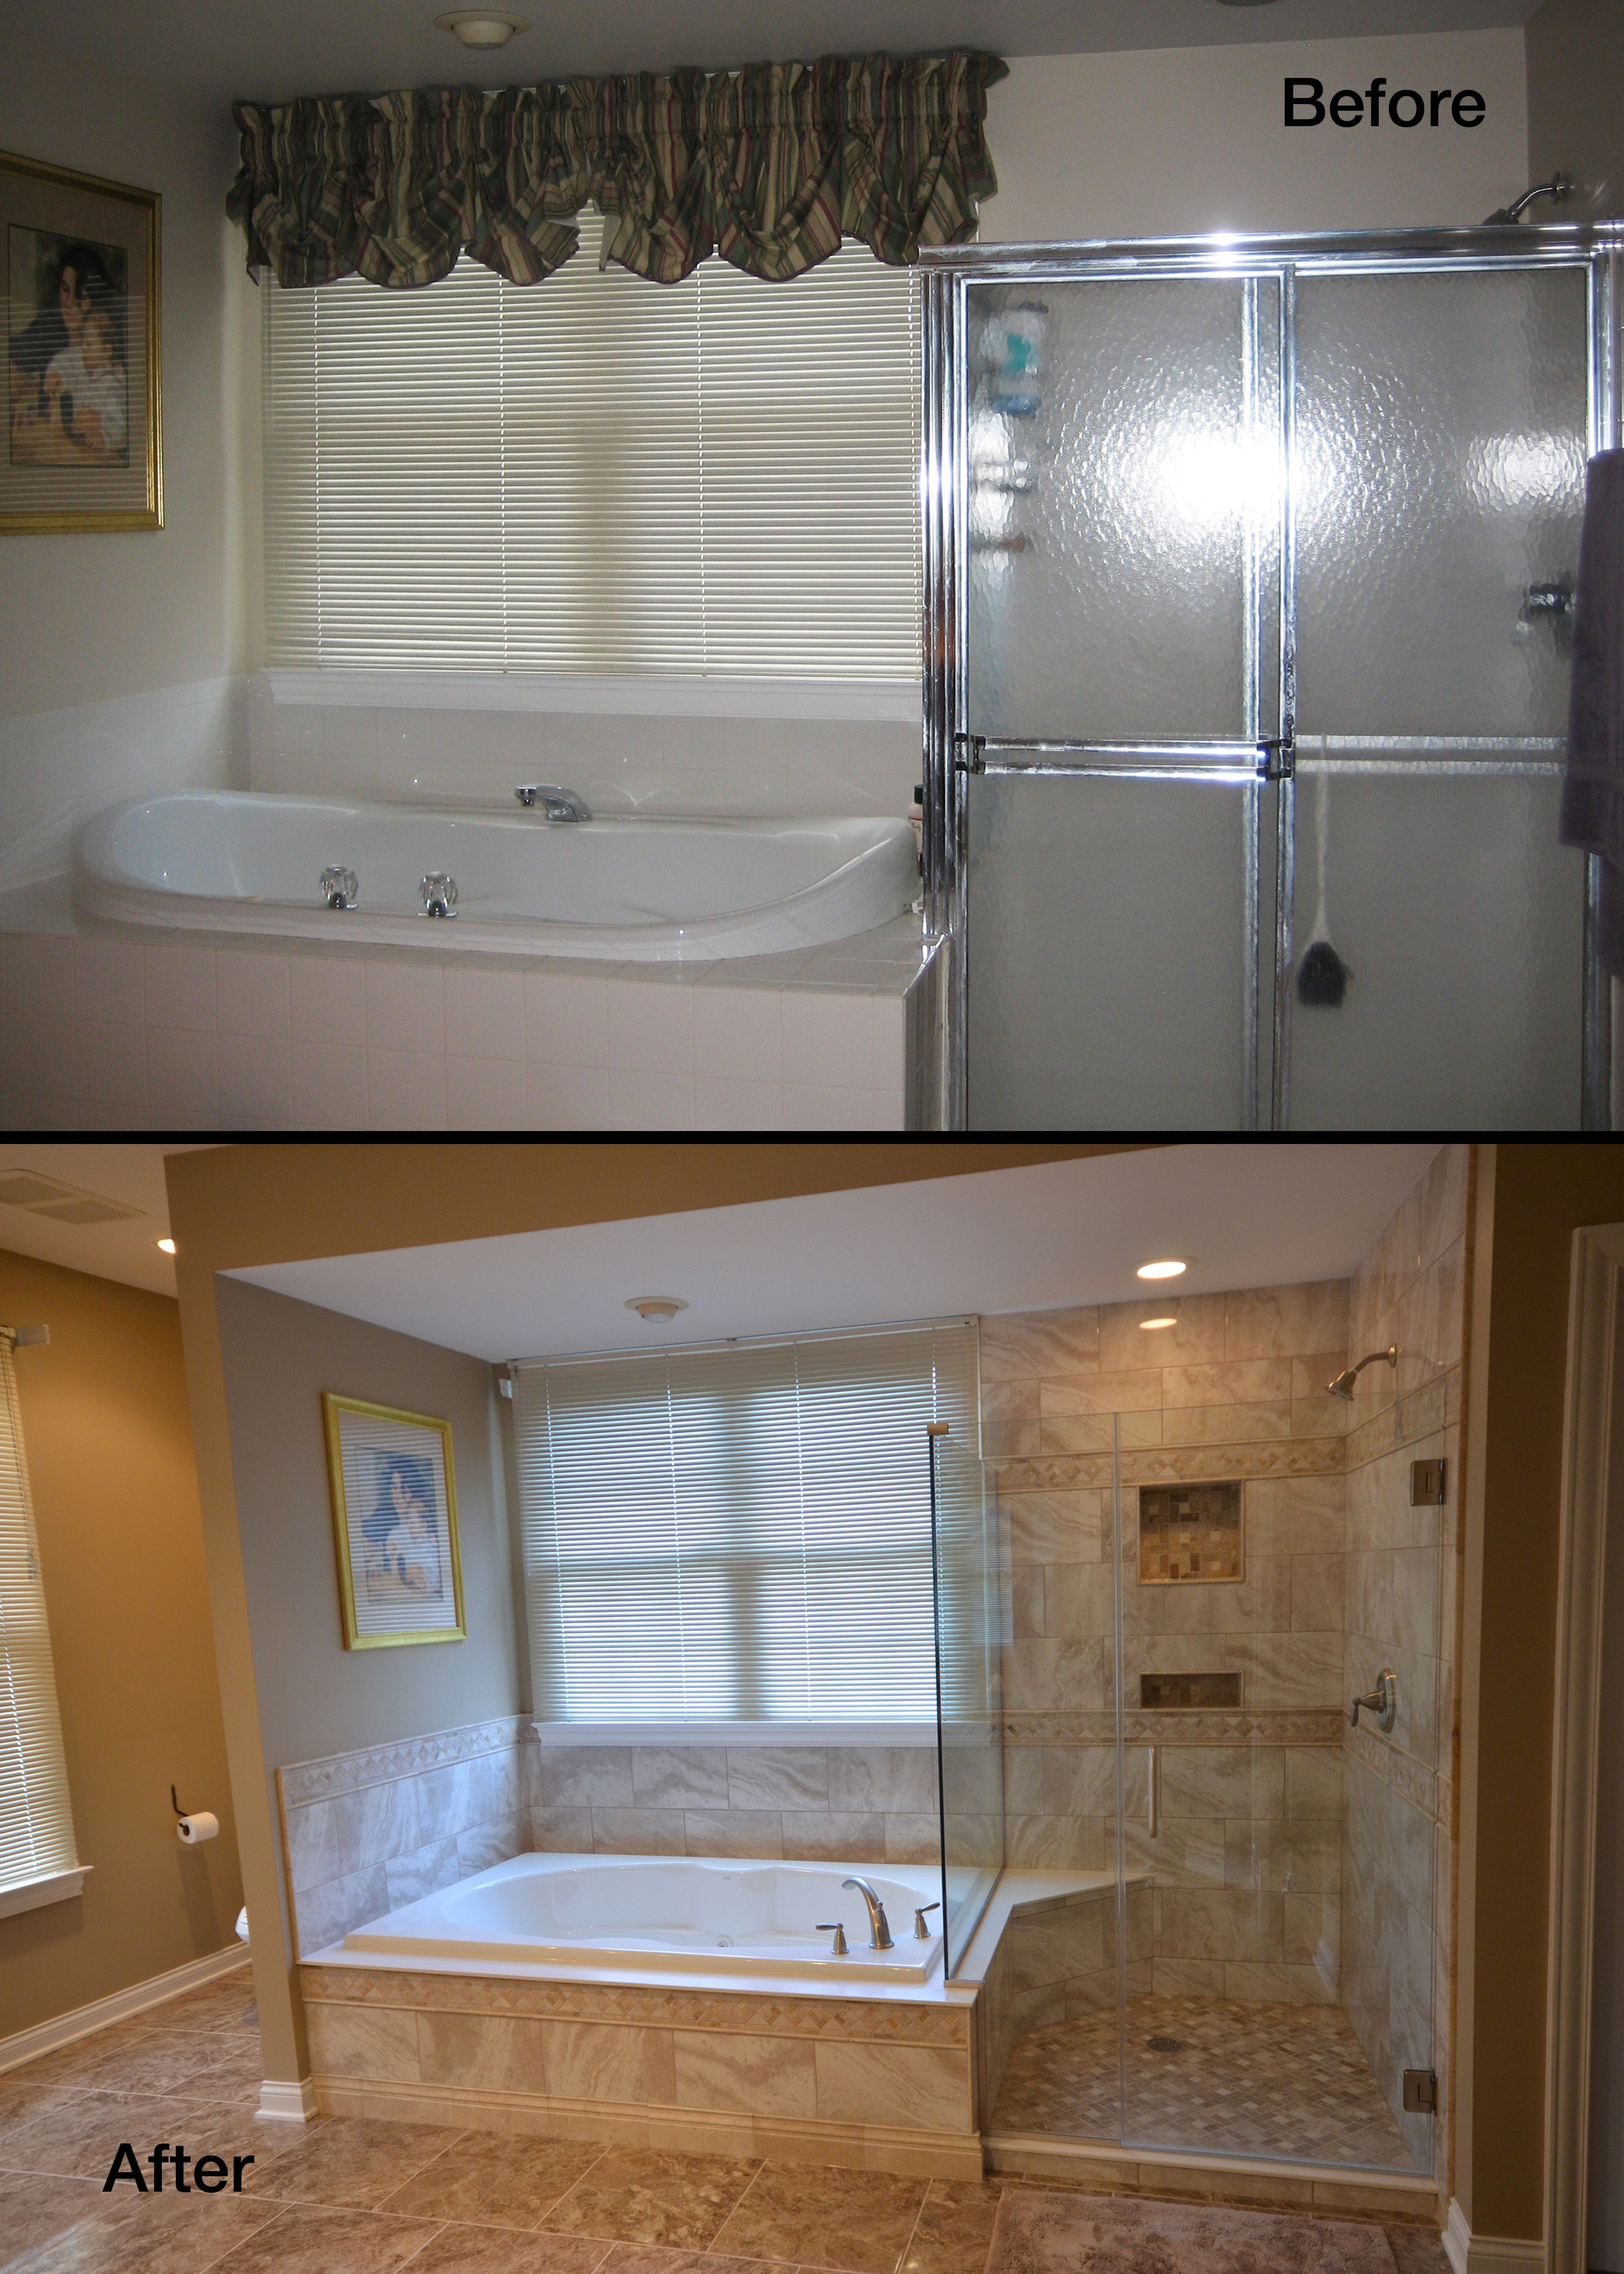 Bathroom Renovation Before And After Pictures Bathroom Remodel Master Bathroom Redesign Bathrooms Remodel